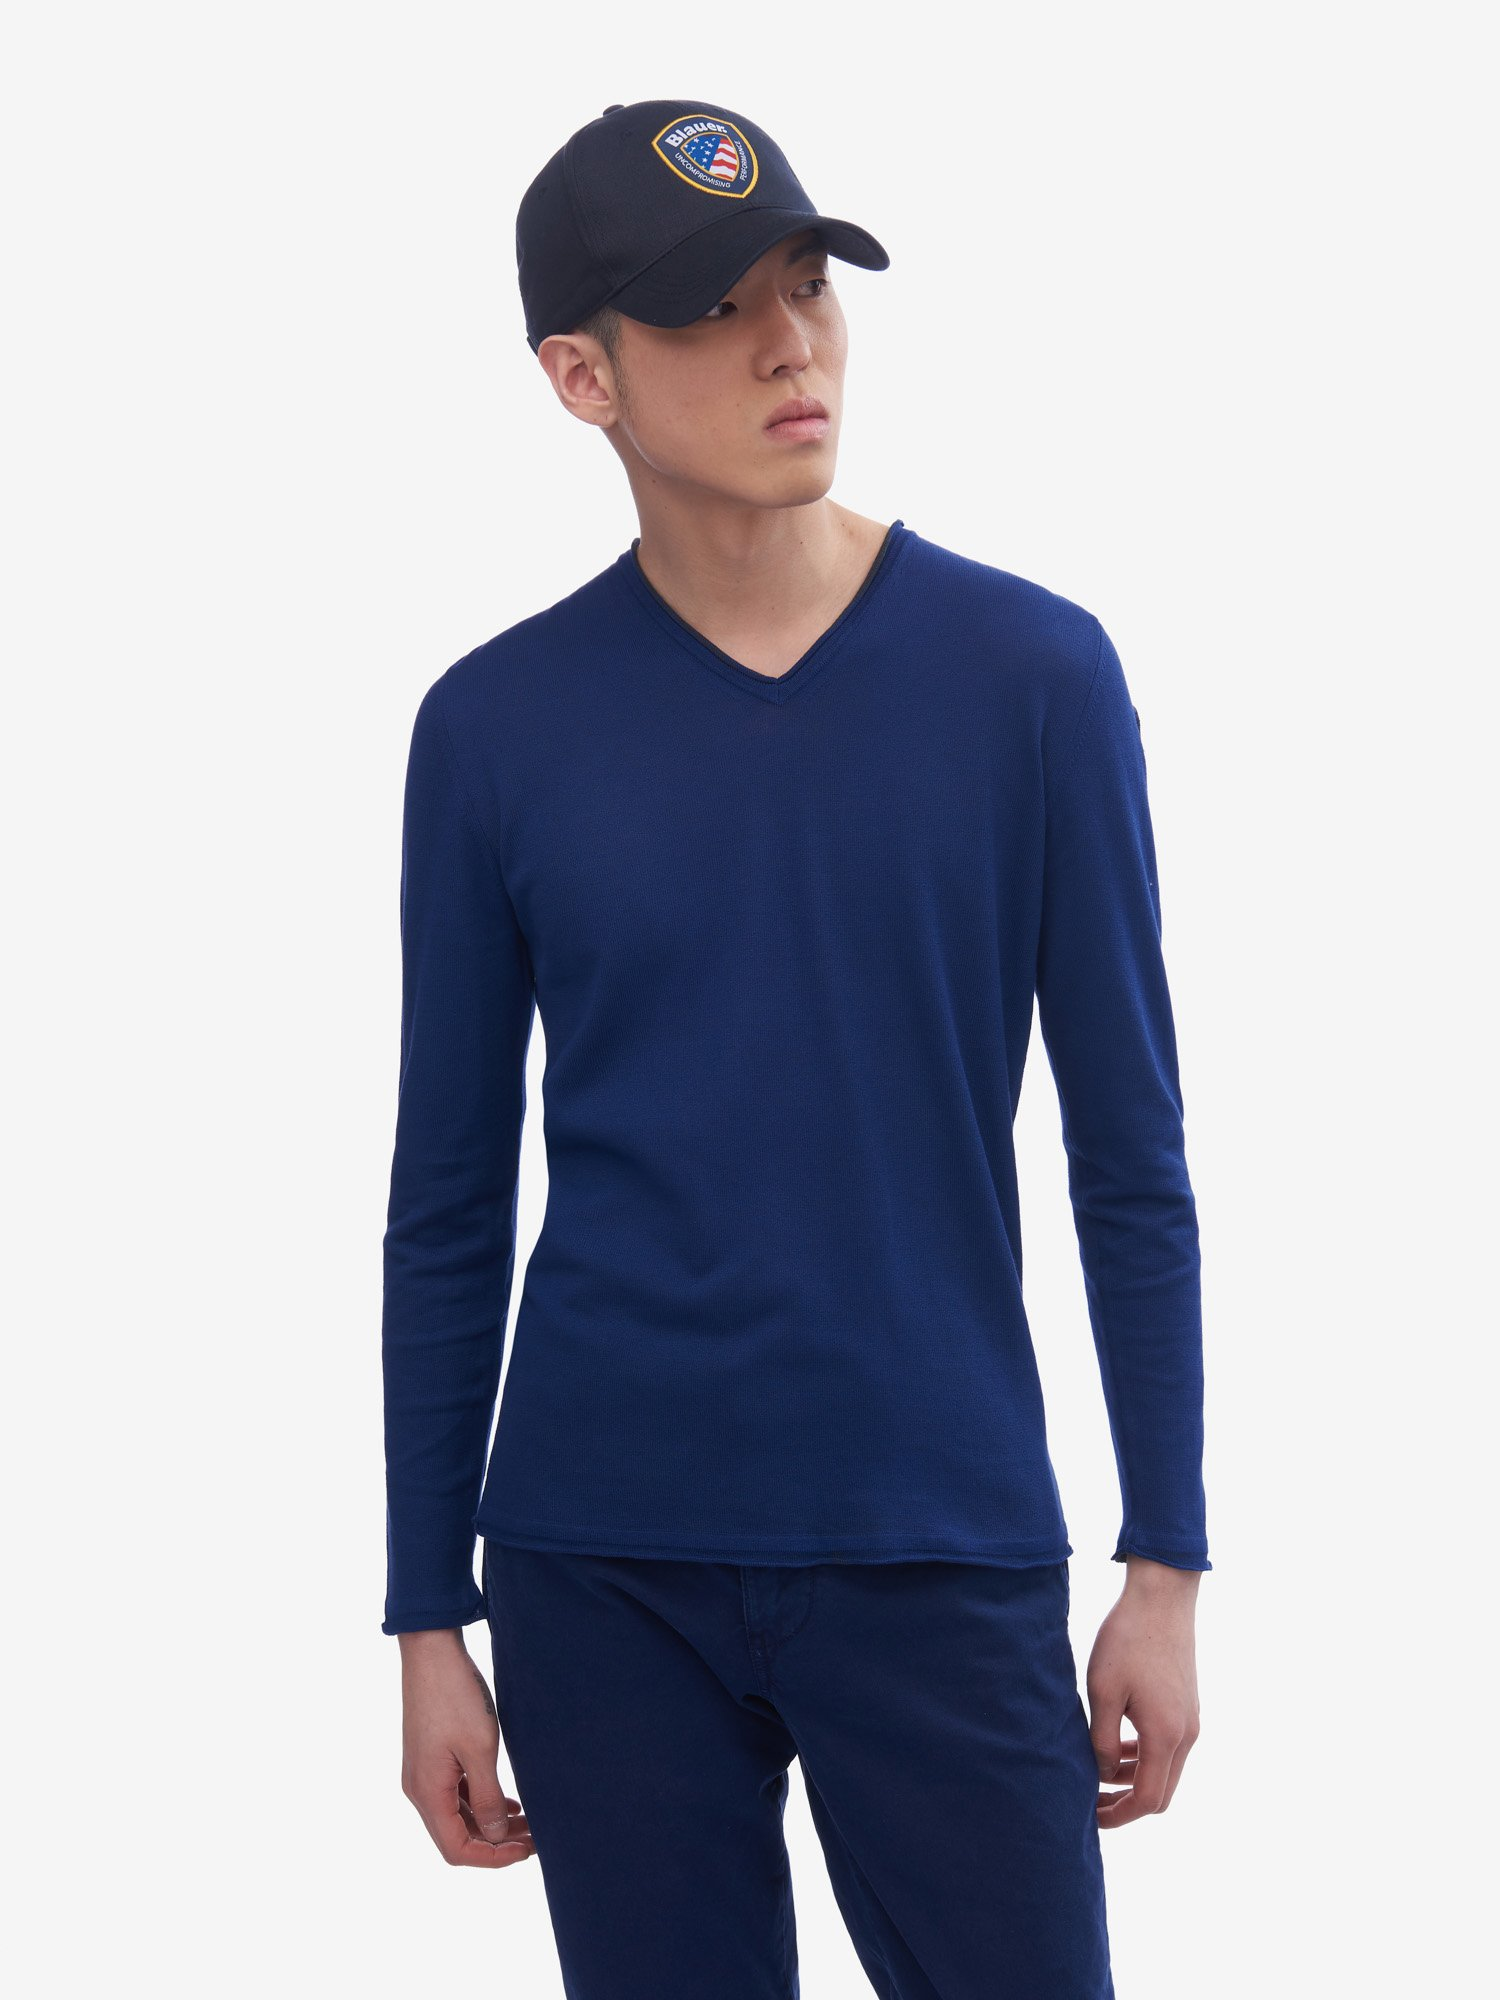 PLAIN KNIT V-NECK SWEATER - Blauer